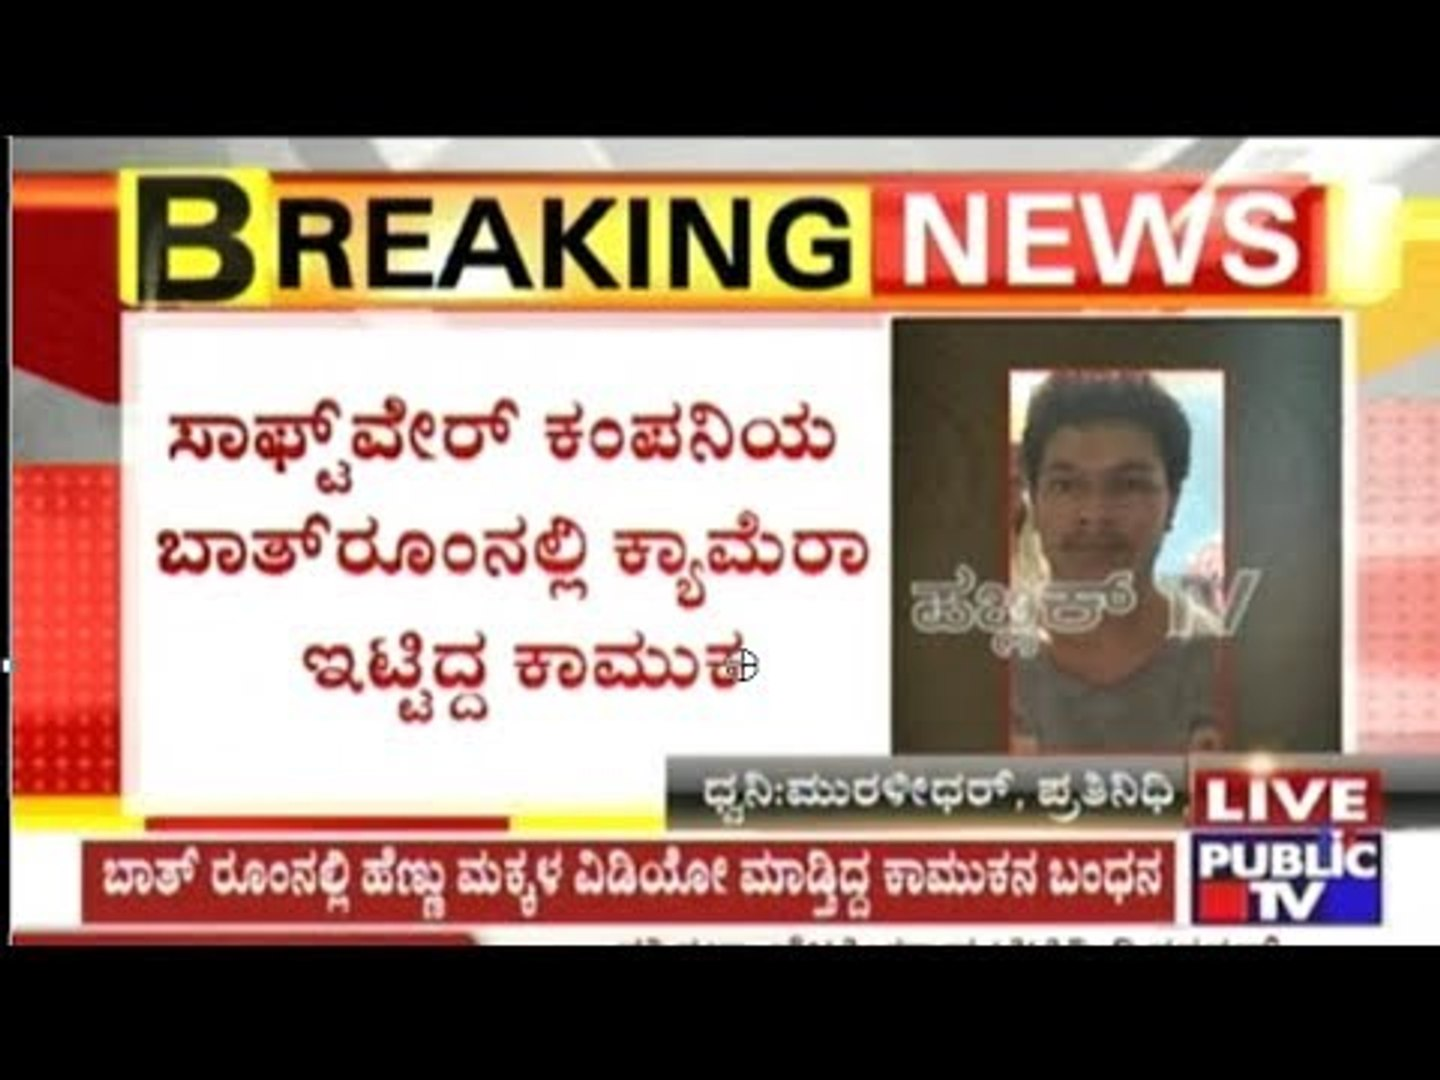 Bangalore: Pervert Who Captured Video Of Women In Bathrooms & Uploaded On Youtube Arrested